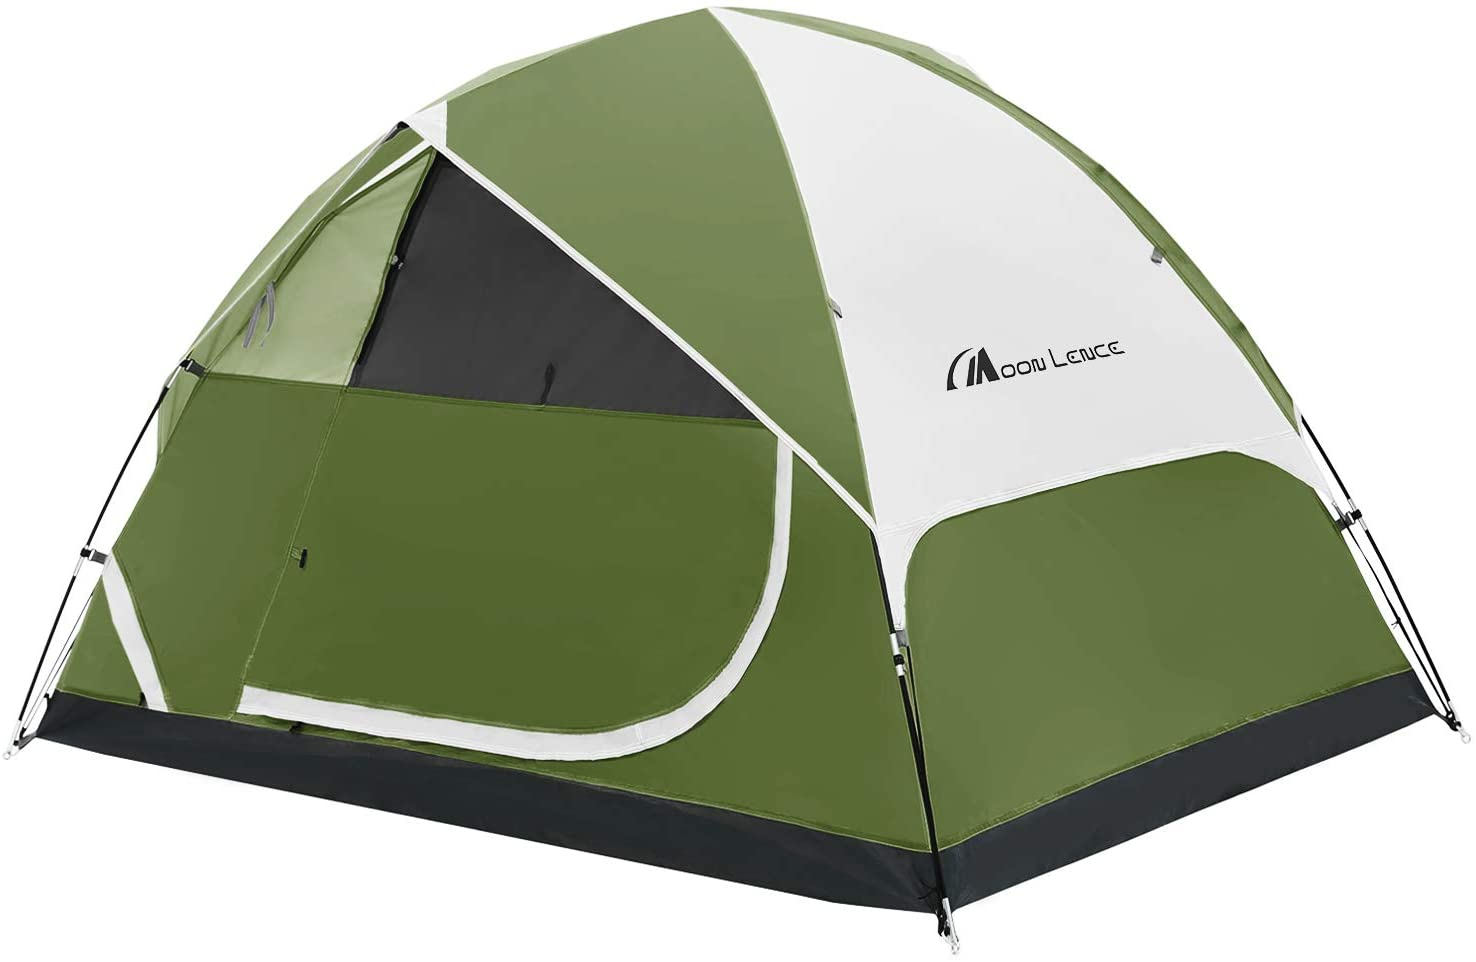 MOON LENCE Camping Tent for 6P